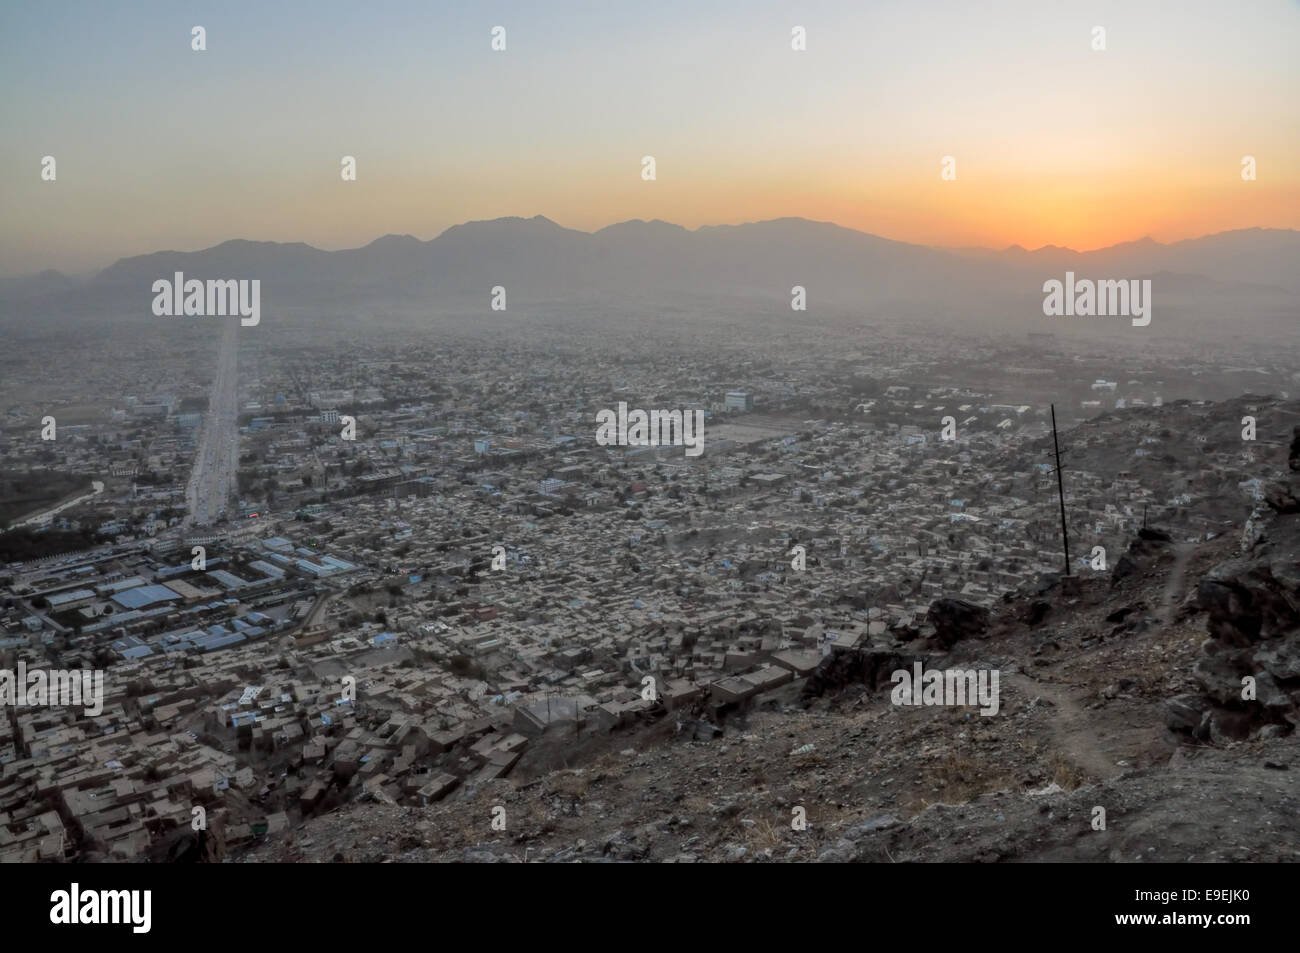 Evening view of Kabul in Afghanistan with sunset - Stock Image